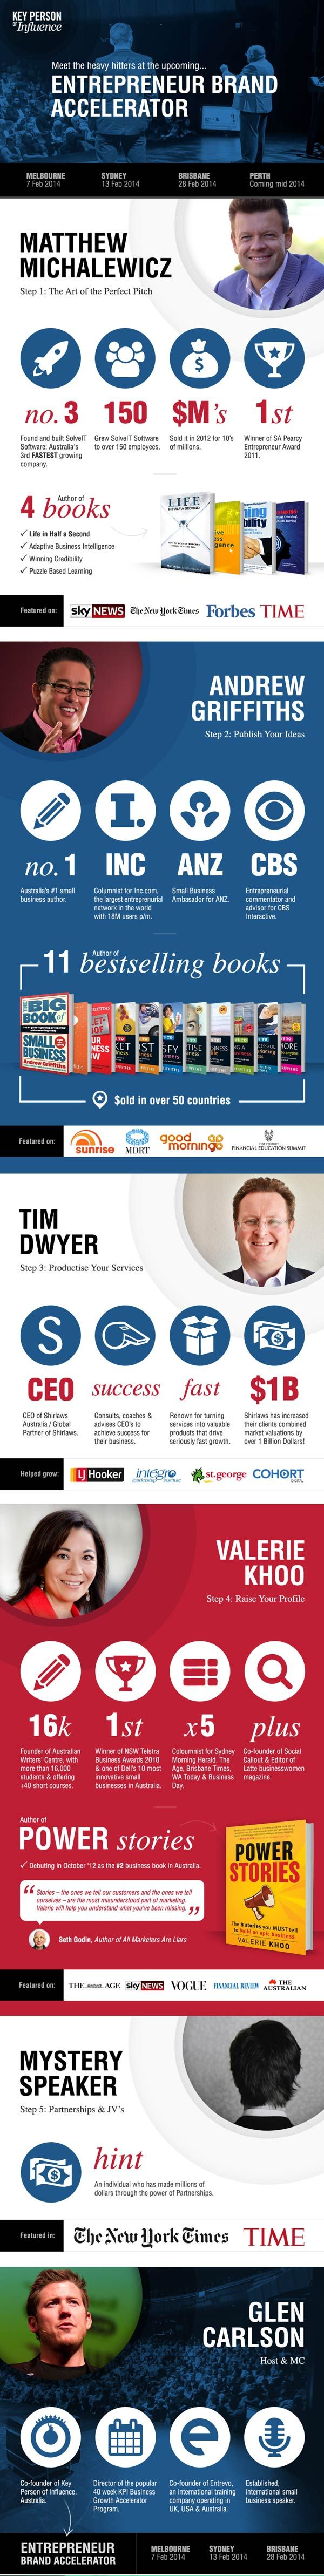 Meet the heavy hitters at the upcoming Entrepreneur Brand Accelerator.  Visit www.keypersonofinfluence.com.au to grab your ticket.  Melb | Syd | Bris #kpimethod #kpiday #kpimentor